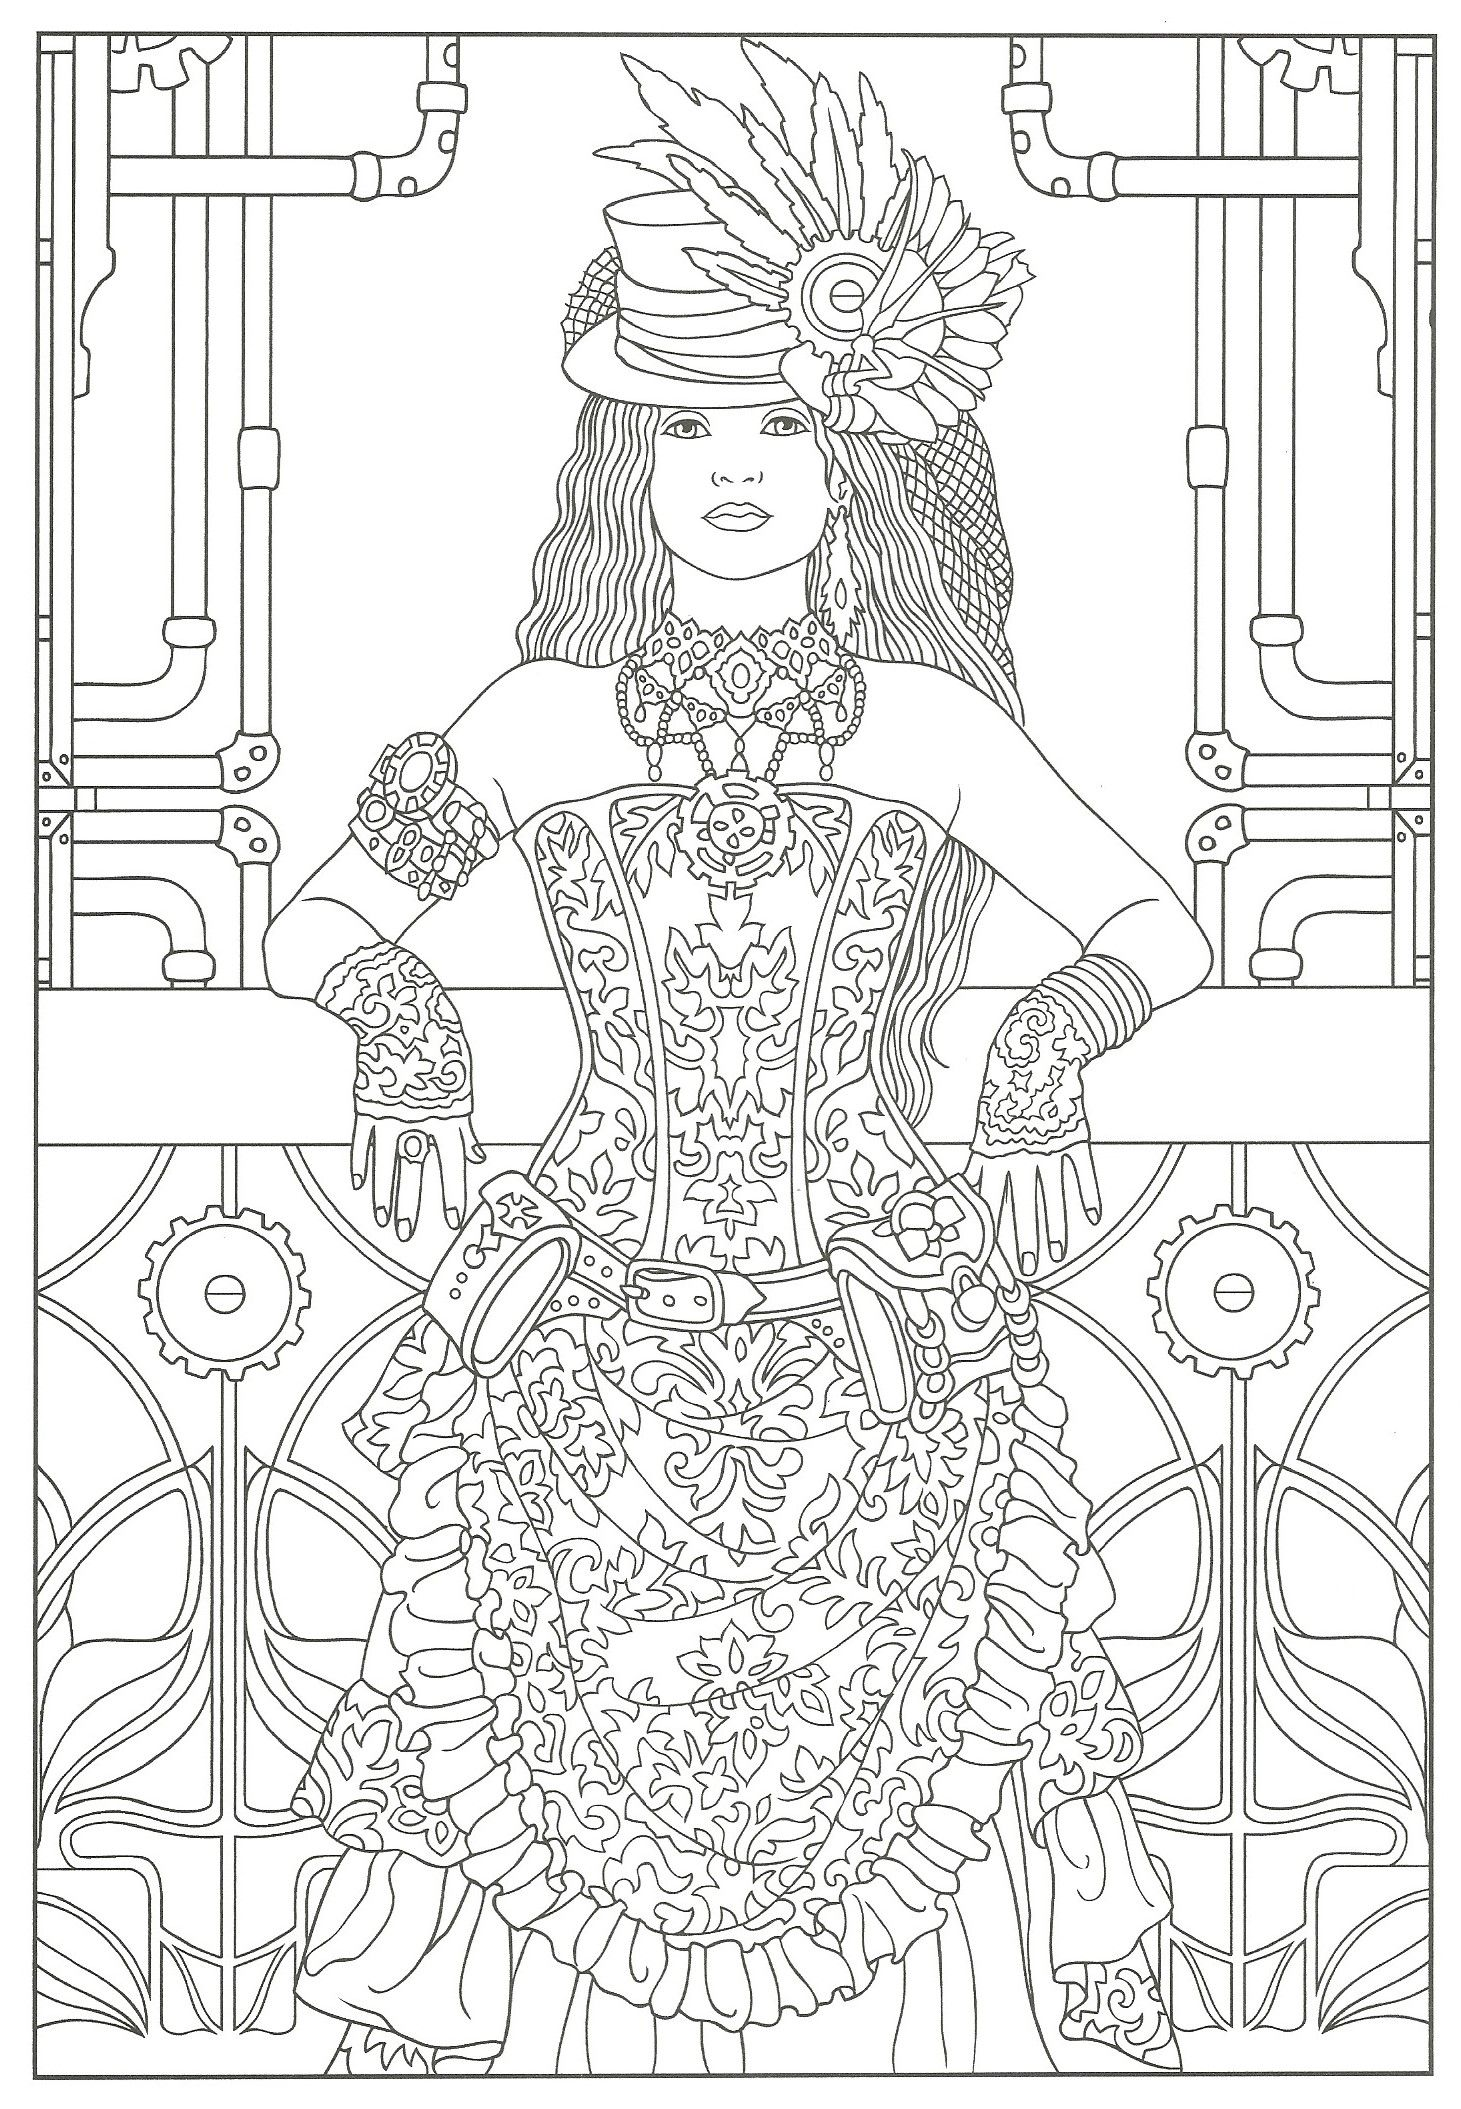 Steampunk Adult Coloring Artwork By Marty Noble Creative